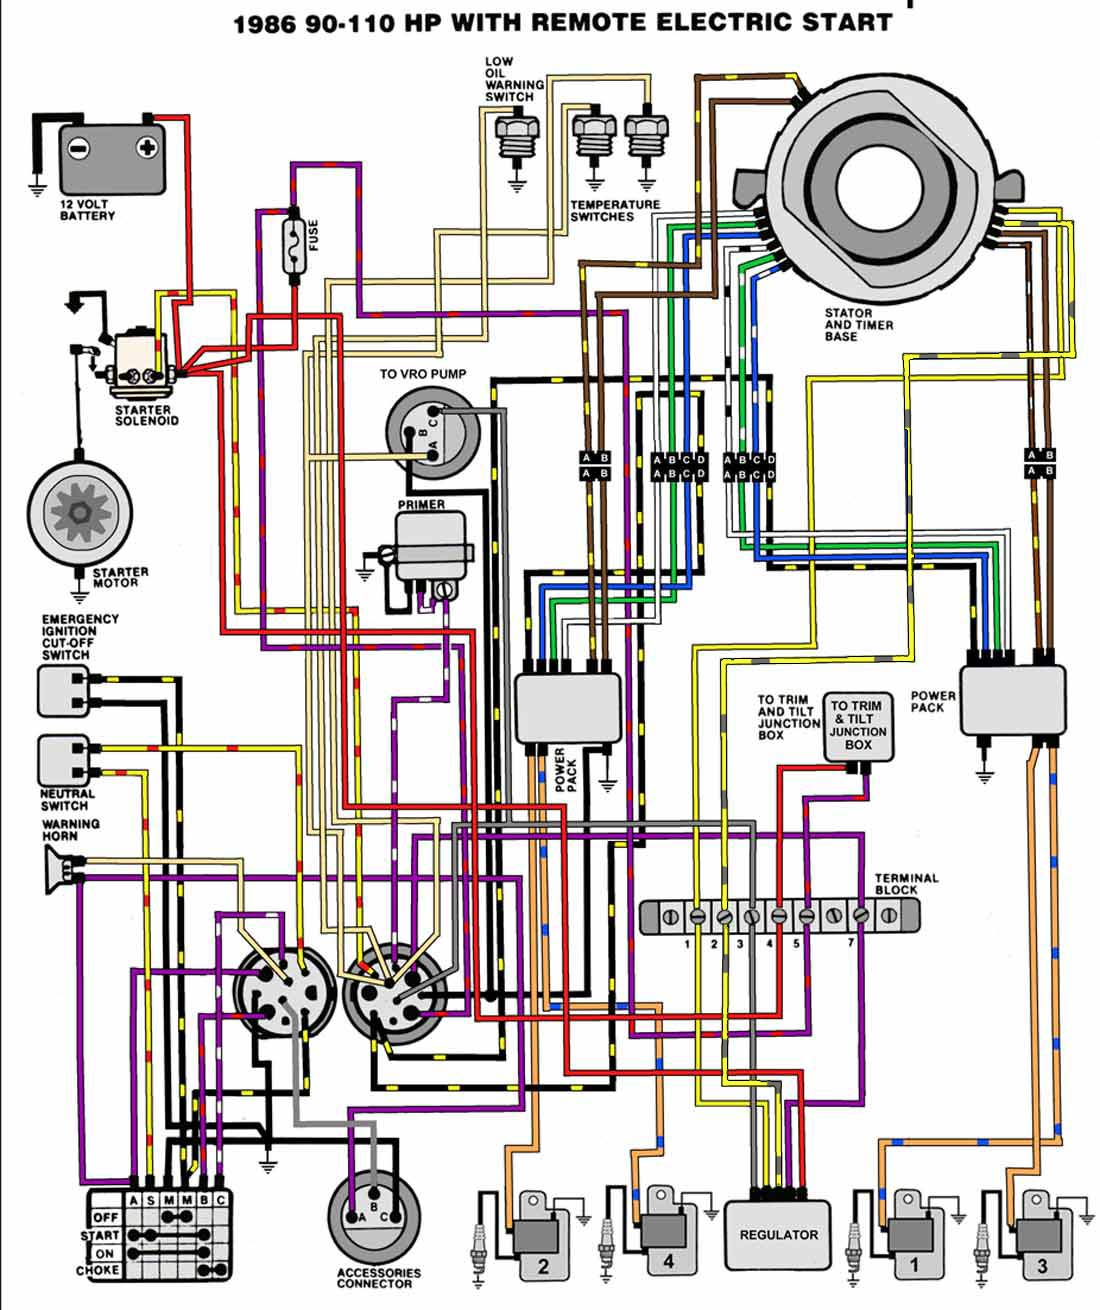 Mercruiser Alpha One Lower Unit Diagram together with Transtemp additionally Fuel 20Gauge 20Notes likewise Showthread in addition 391444 Need Help Wiring A 3 Position Ignition Switch To A 1962 40hp Johnson. on trim sender wiring diagram